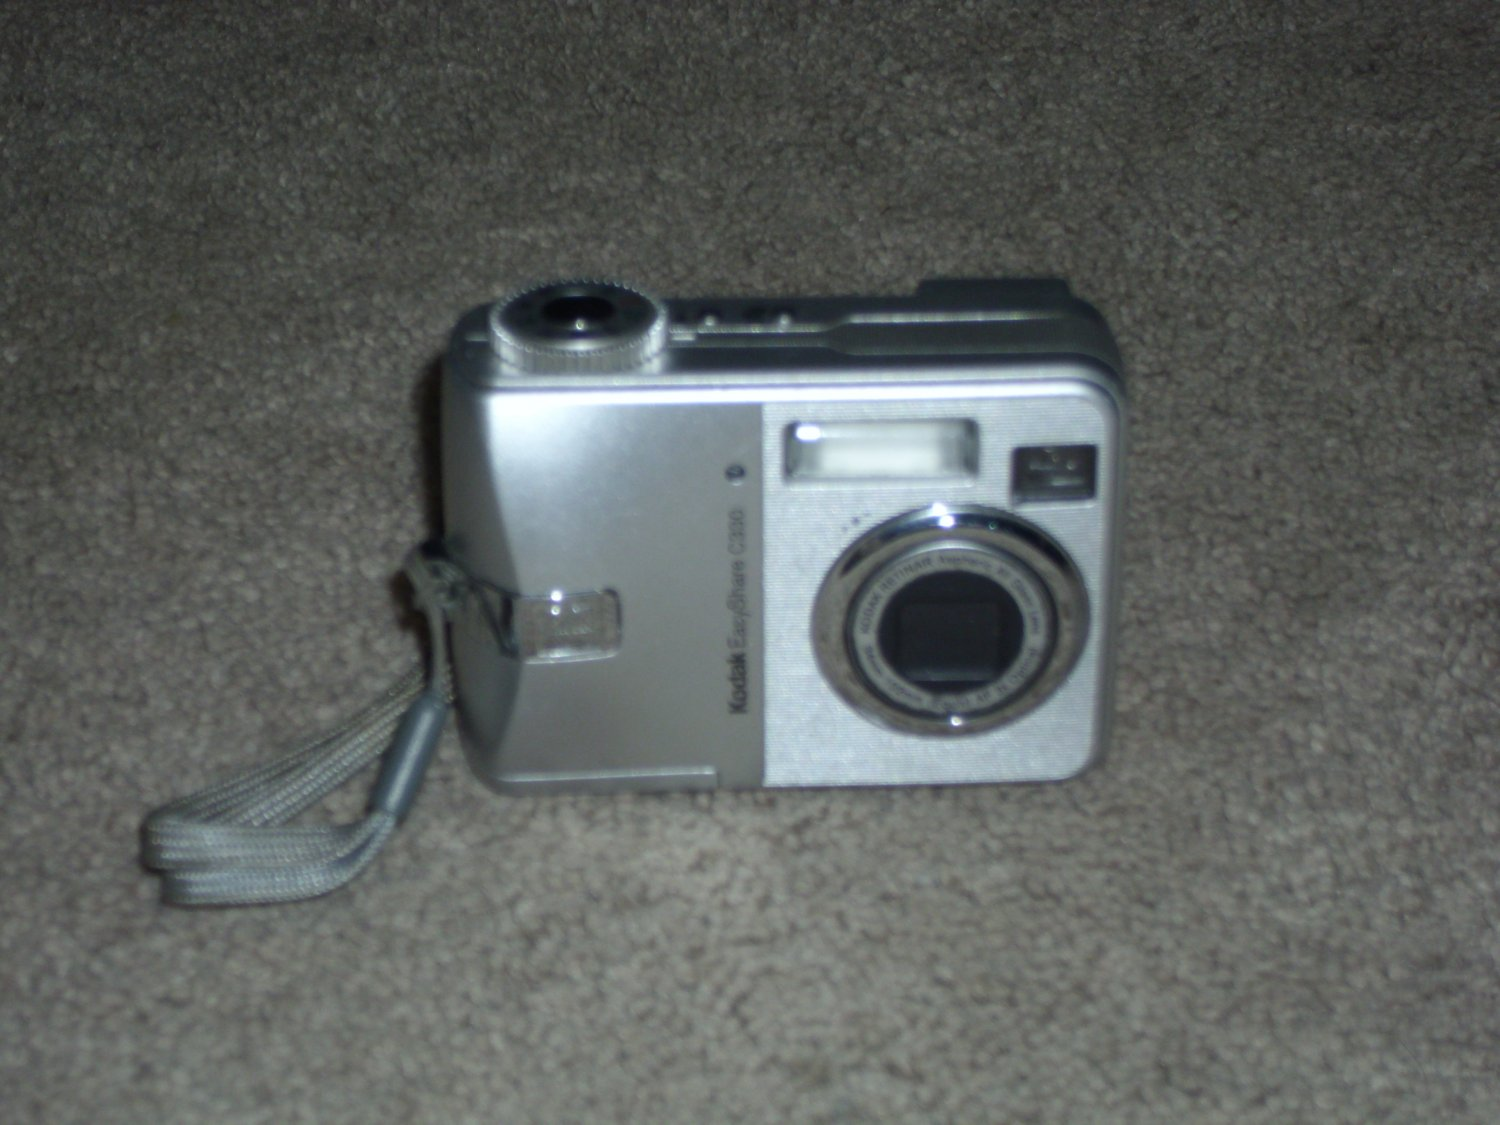 Kodak EasyShare C330 Digital Camera